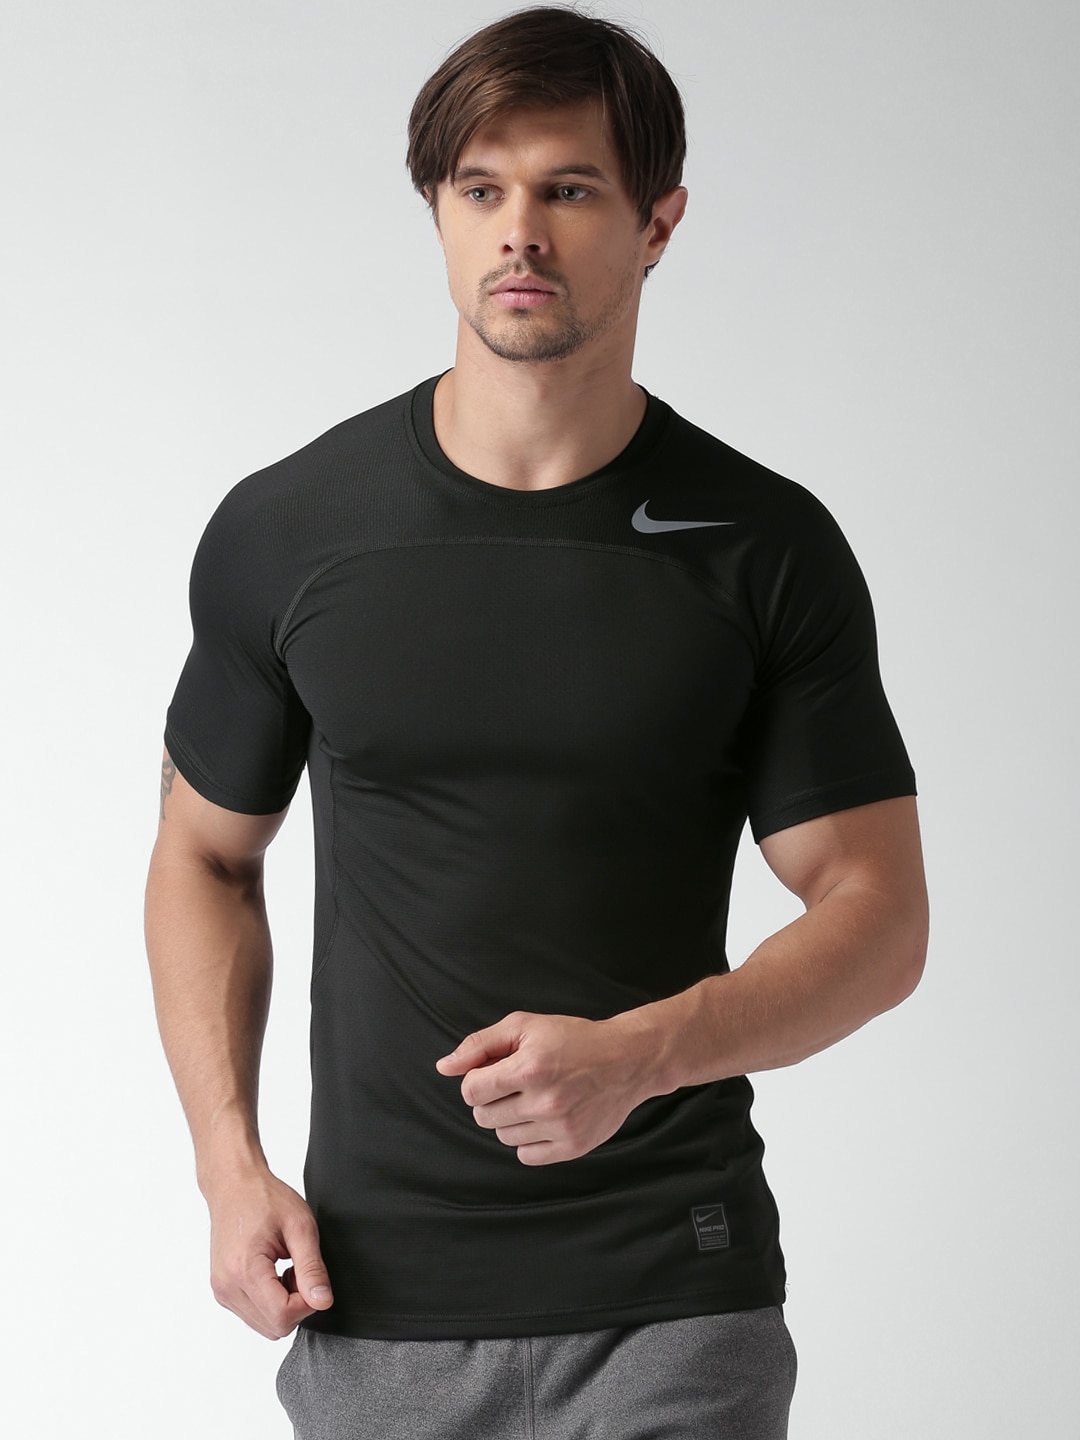 b61f82138bfb Nike 828179-010 Men Black Solid Round Neck T Shirt - Best Price in ...